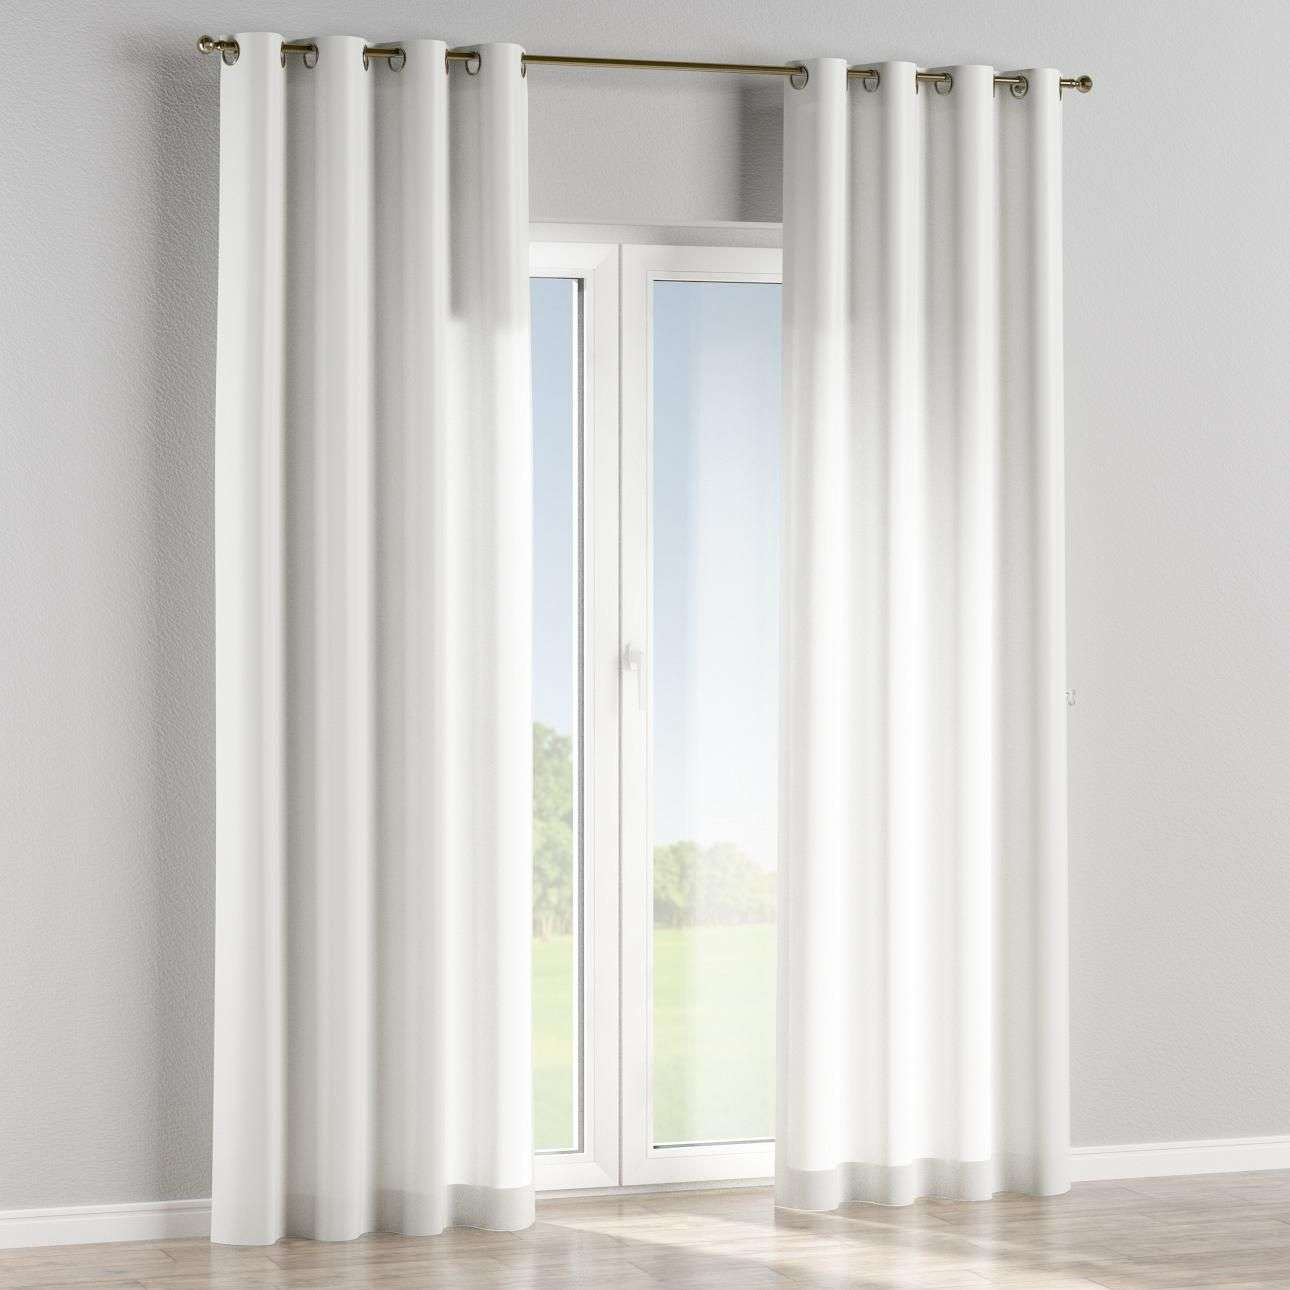 Eyelet curtains in collection Rustica, fabric: 138-22